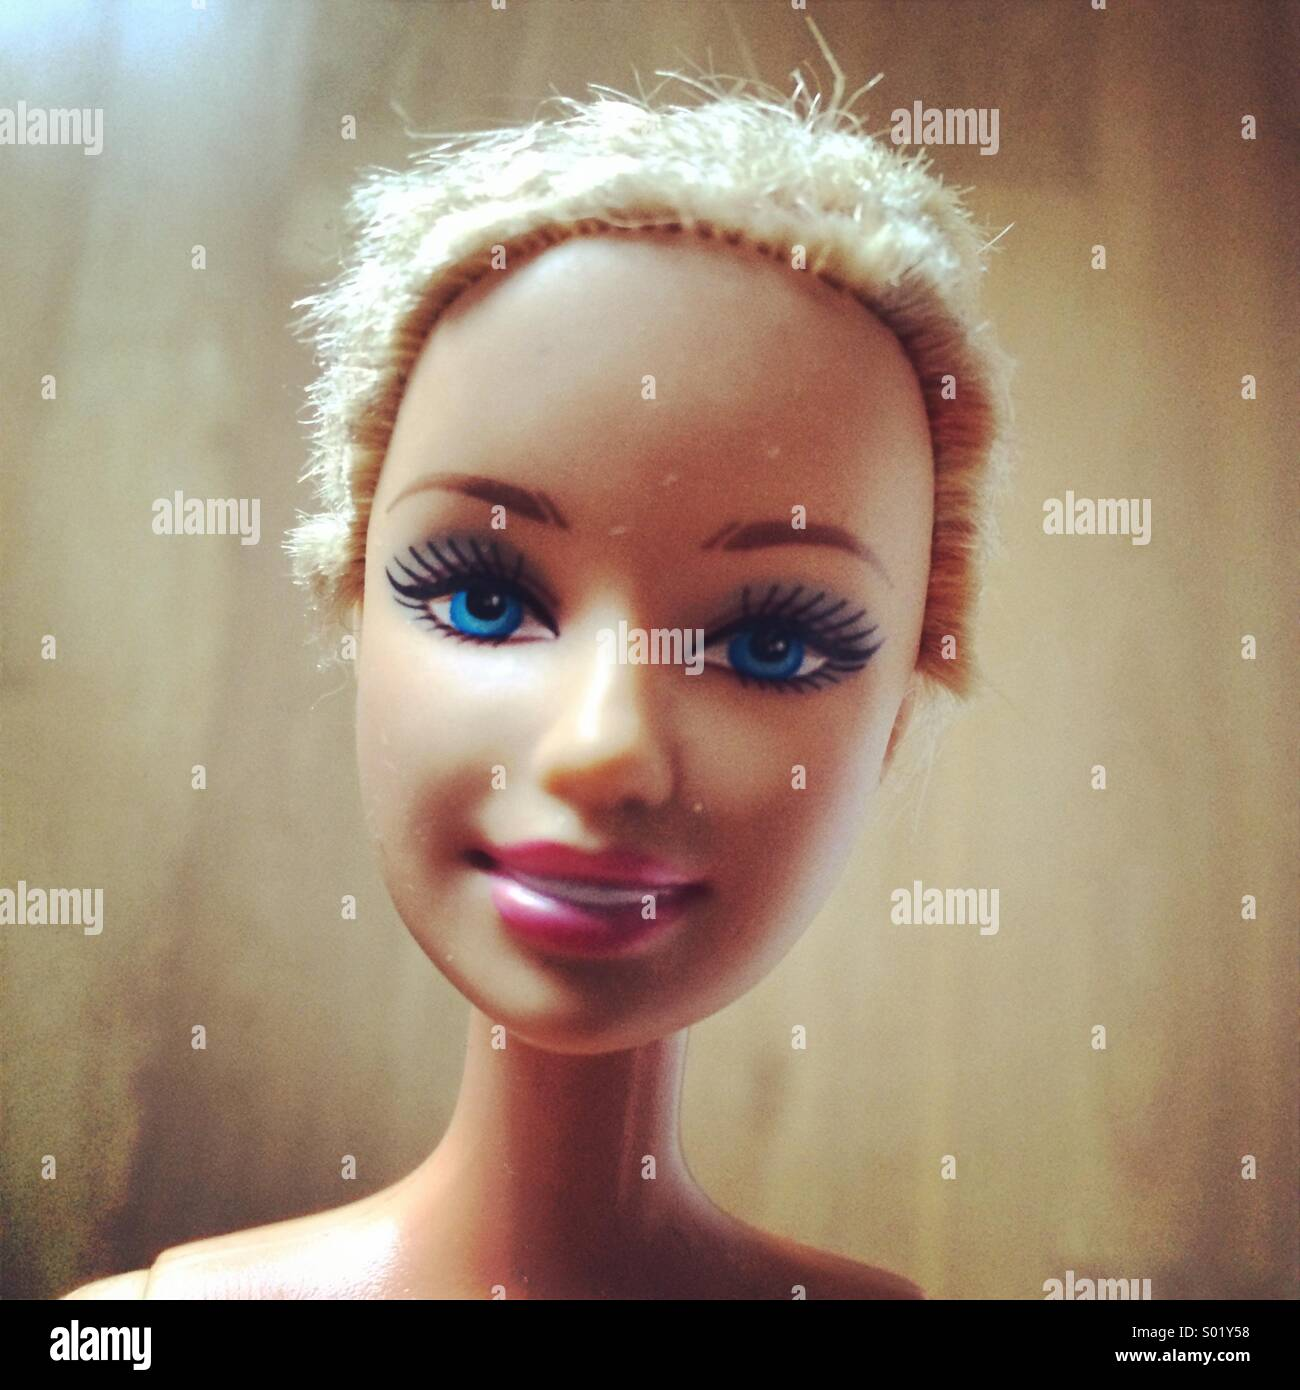 Dolly - Stock Image